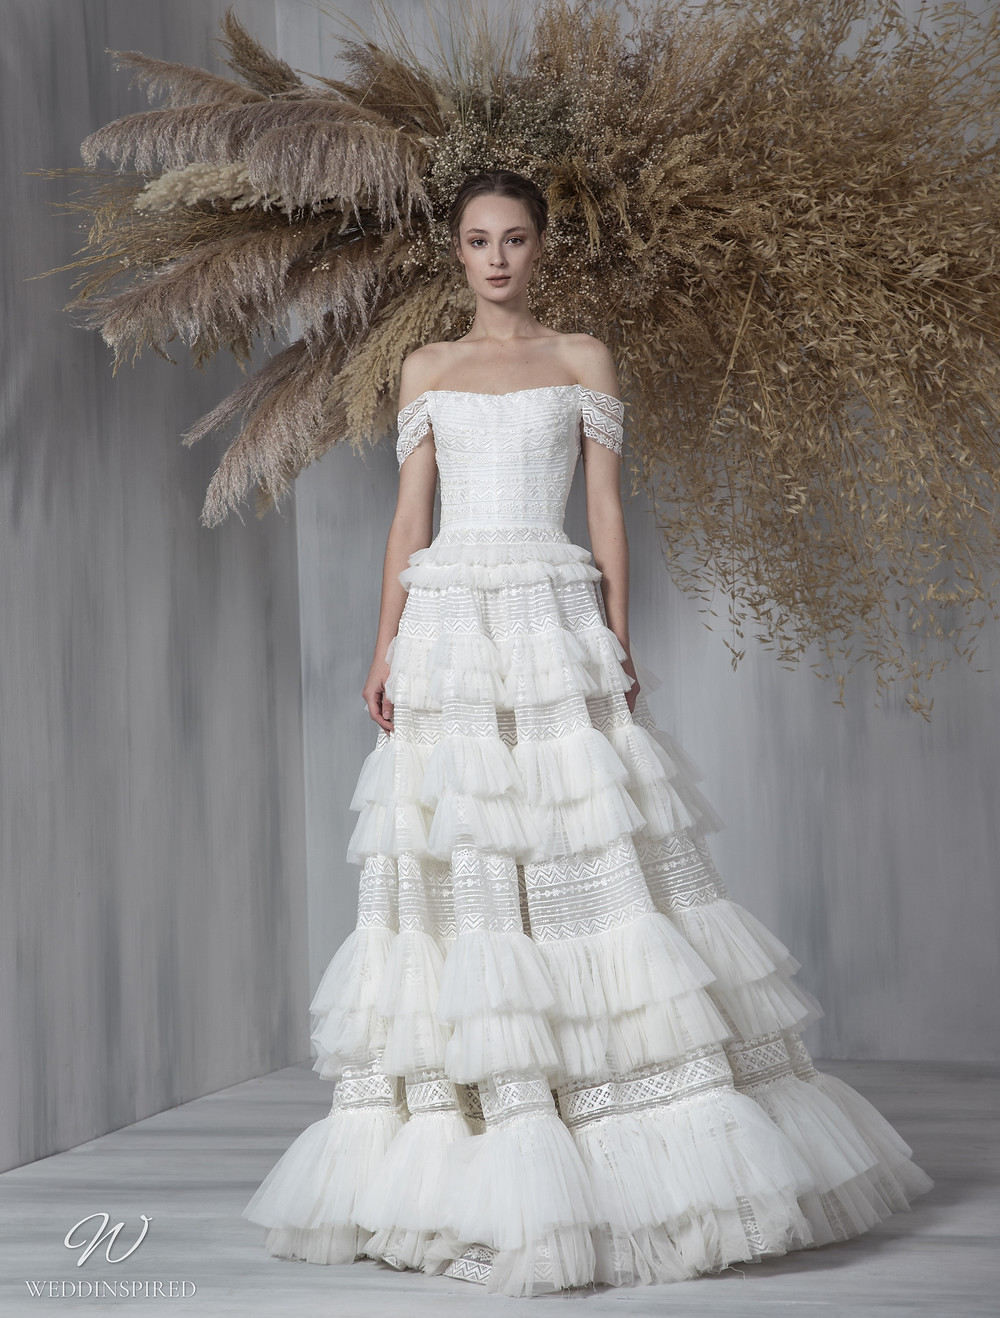 A Tony Ward 2021 off the shoulder A-line wedding dress with a ruffle skirt